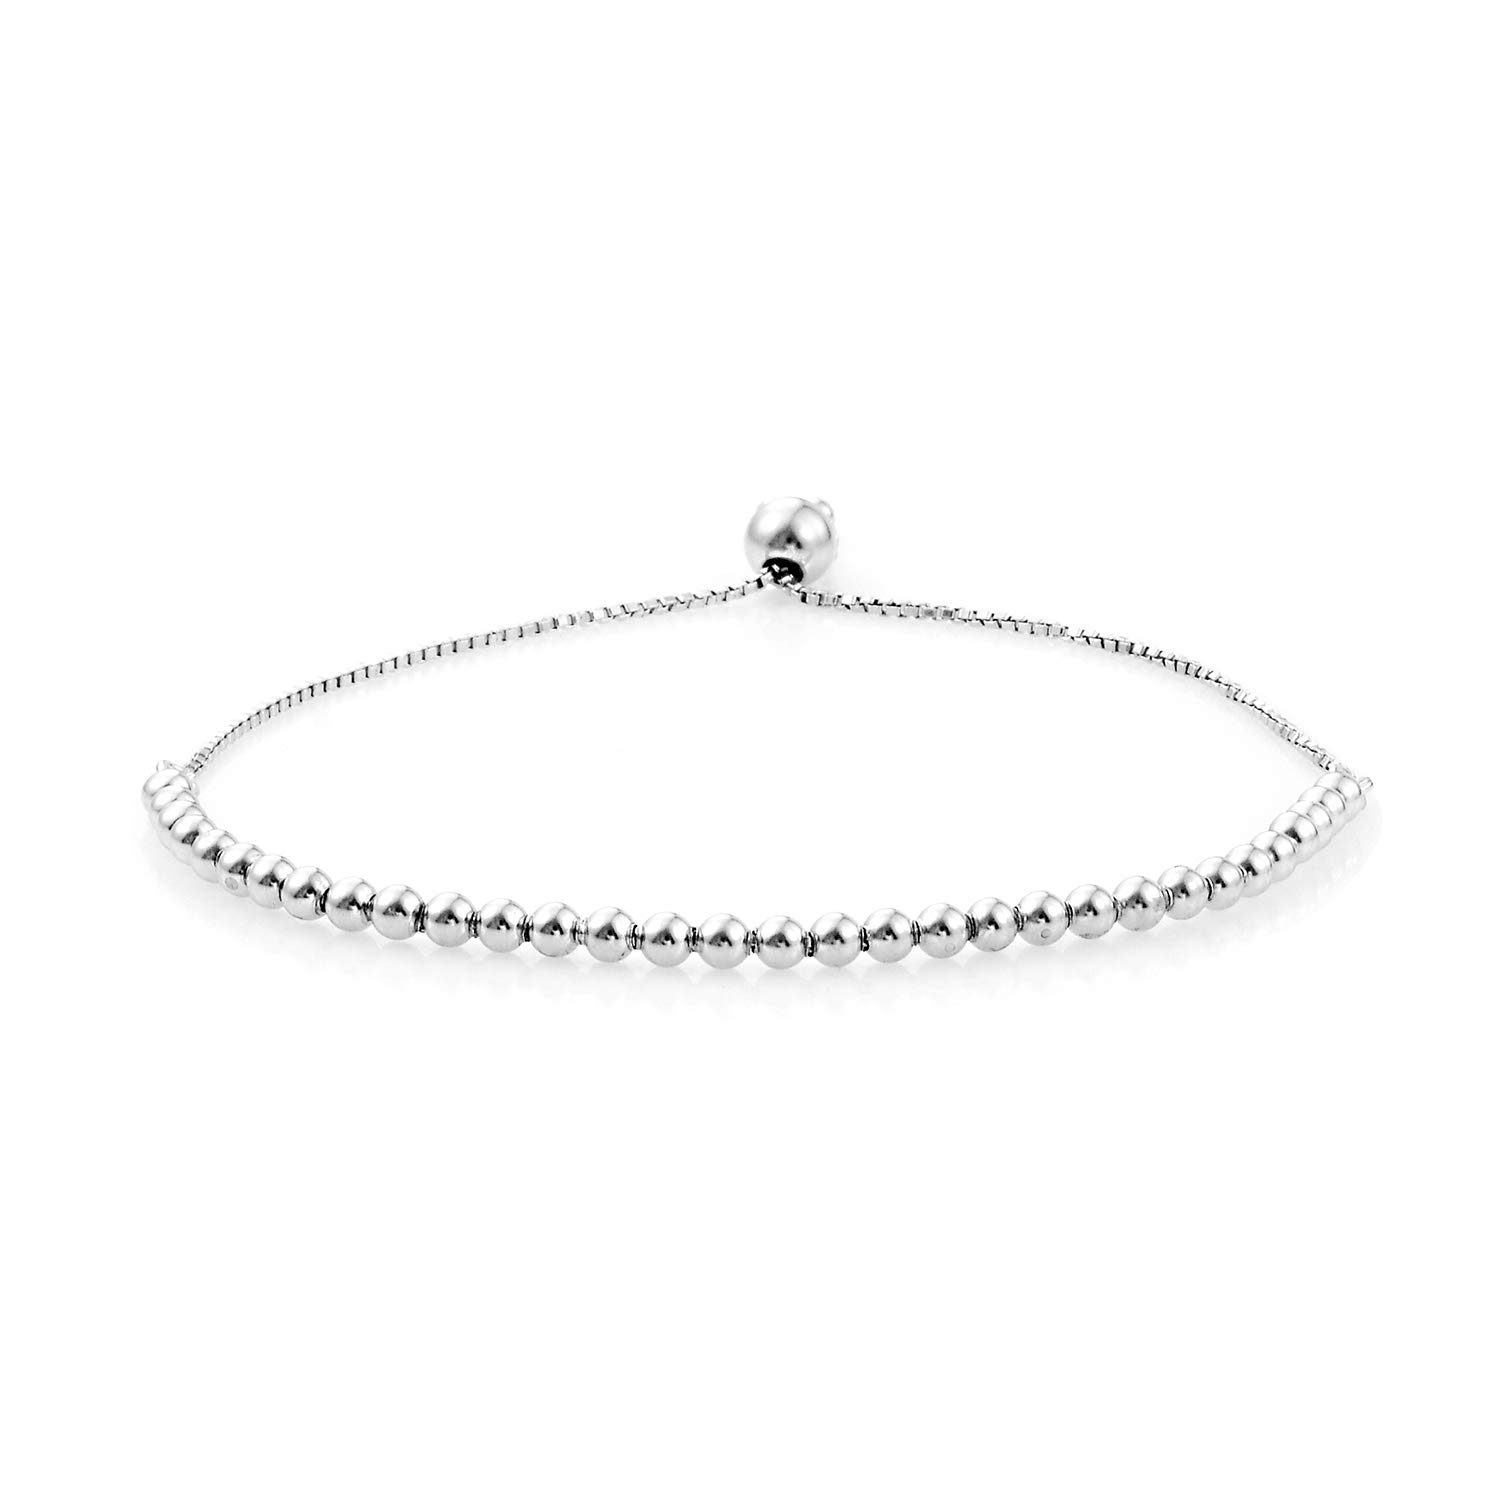 925 Sterling Silver Rhodium Plated Bolo Cuff Bangle Bracelet for Women Adjustable Jewelry 4 g by Shop LC Delivering Joy